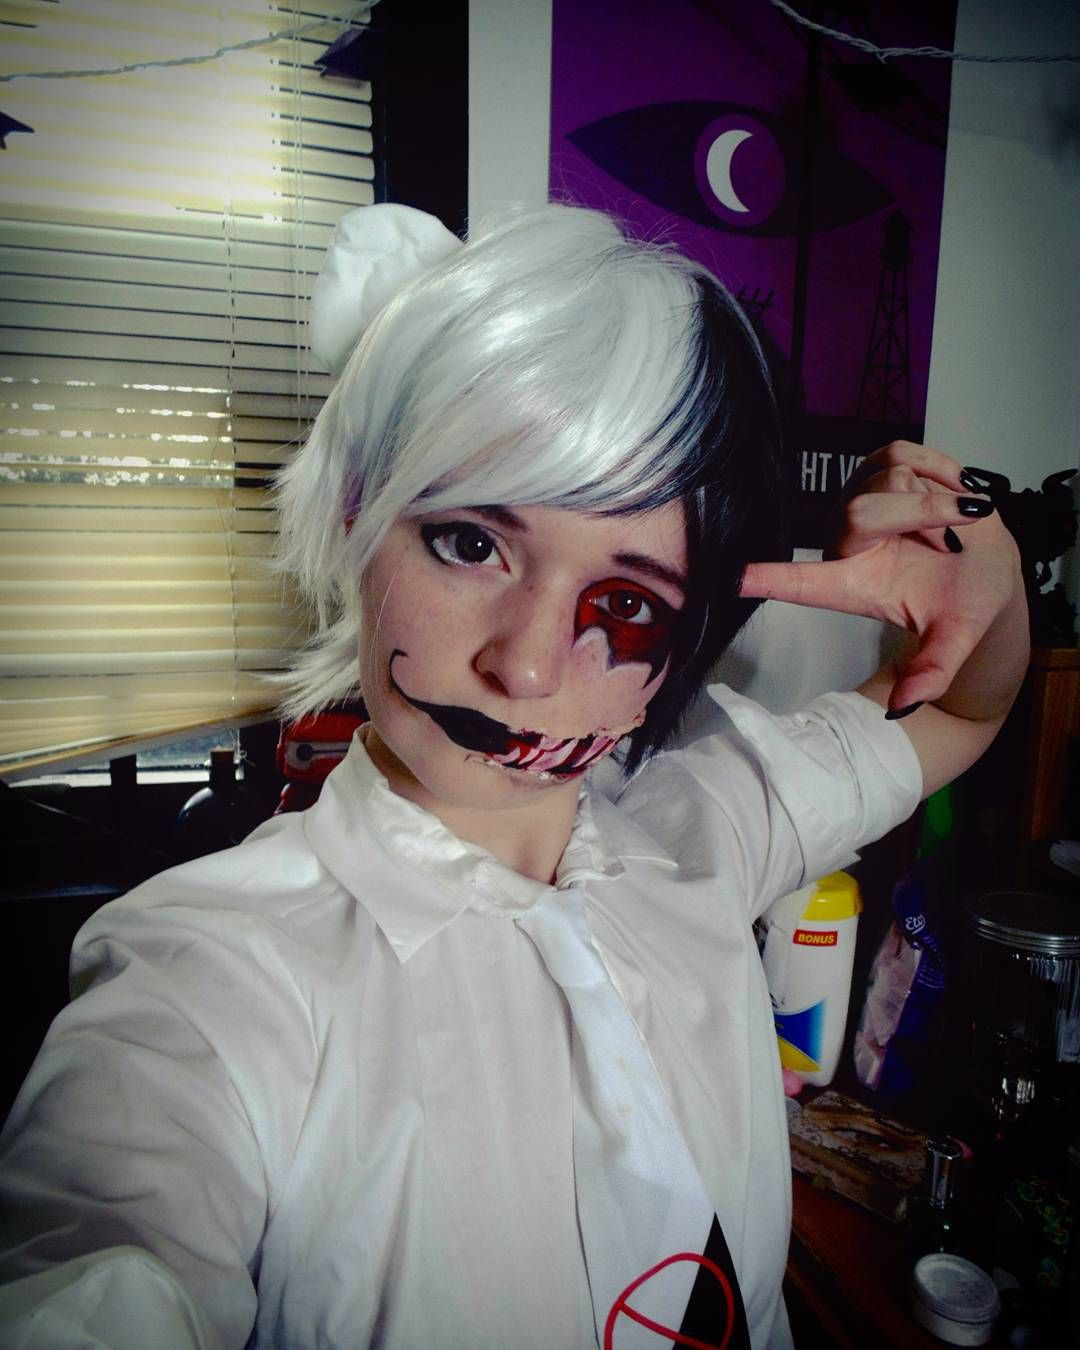 Working on editing a new monobear makeup tutorial it's taking so long though cuz there's so much raw footage  #cosplay #monobear #monobearcosplay #monokuma #monokumacosplay #cosplaymakeup #redcirclelenses #blackcirclelenses #danganronpa #danganronpacosplay